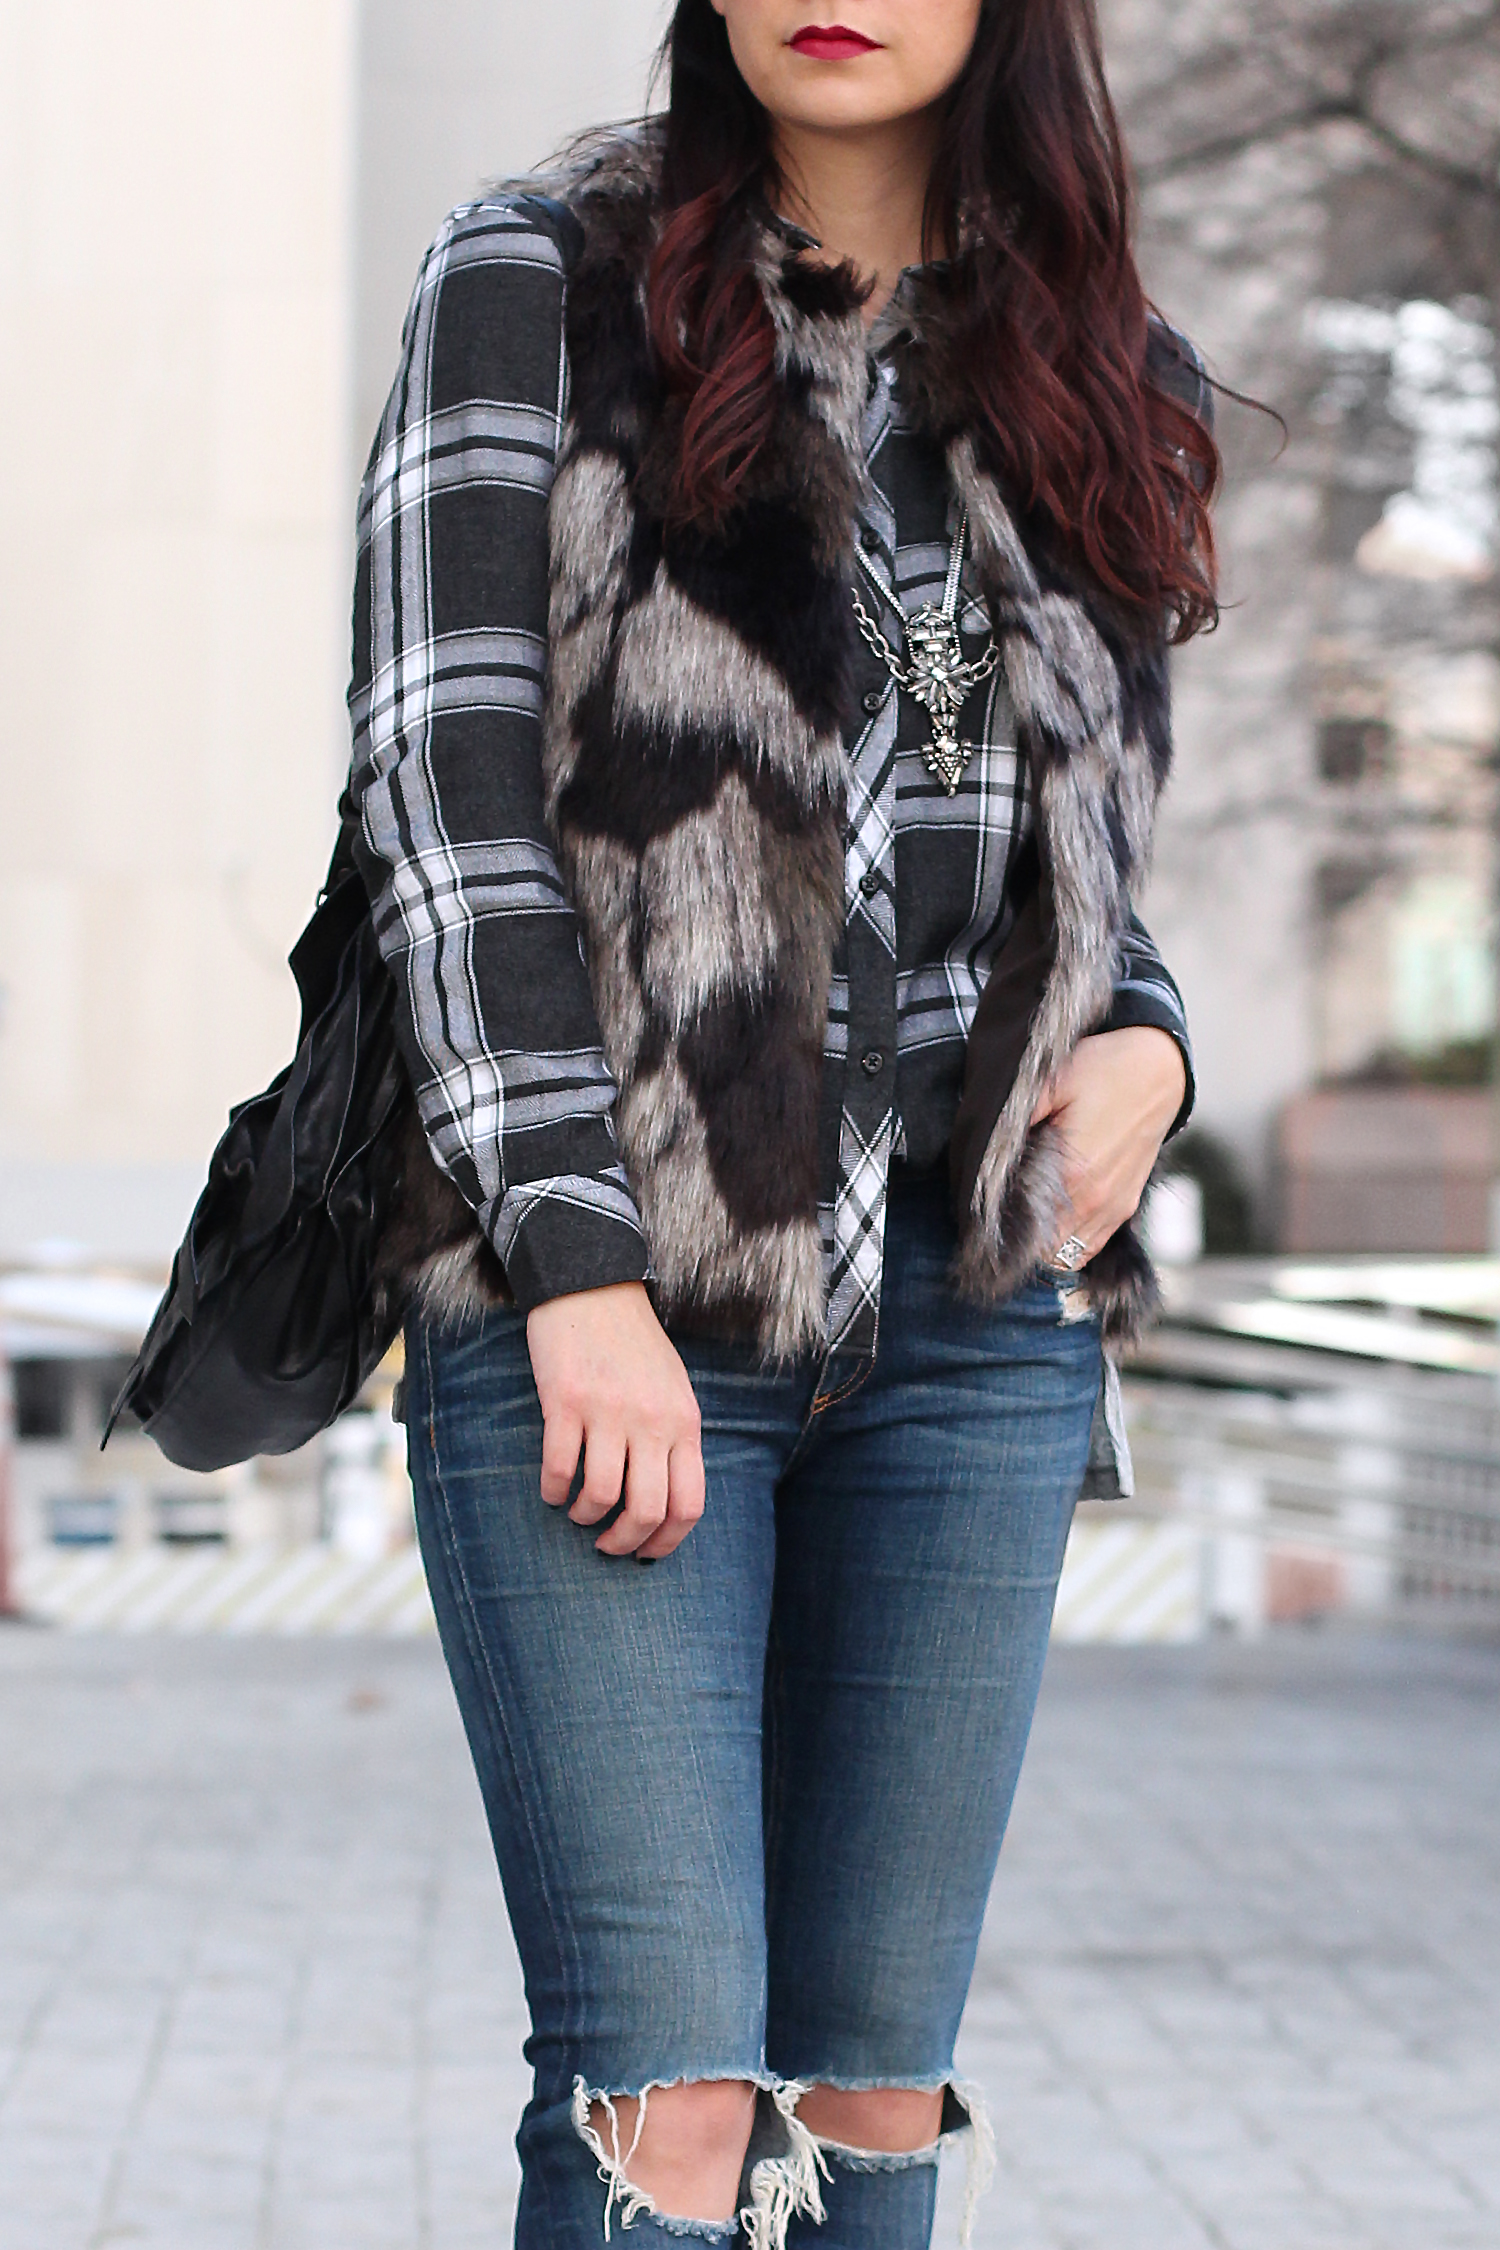 Plaid Flannel Shirt and Fur Vest Outfit